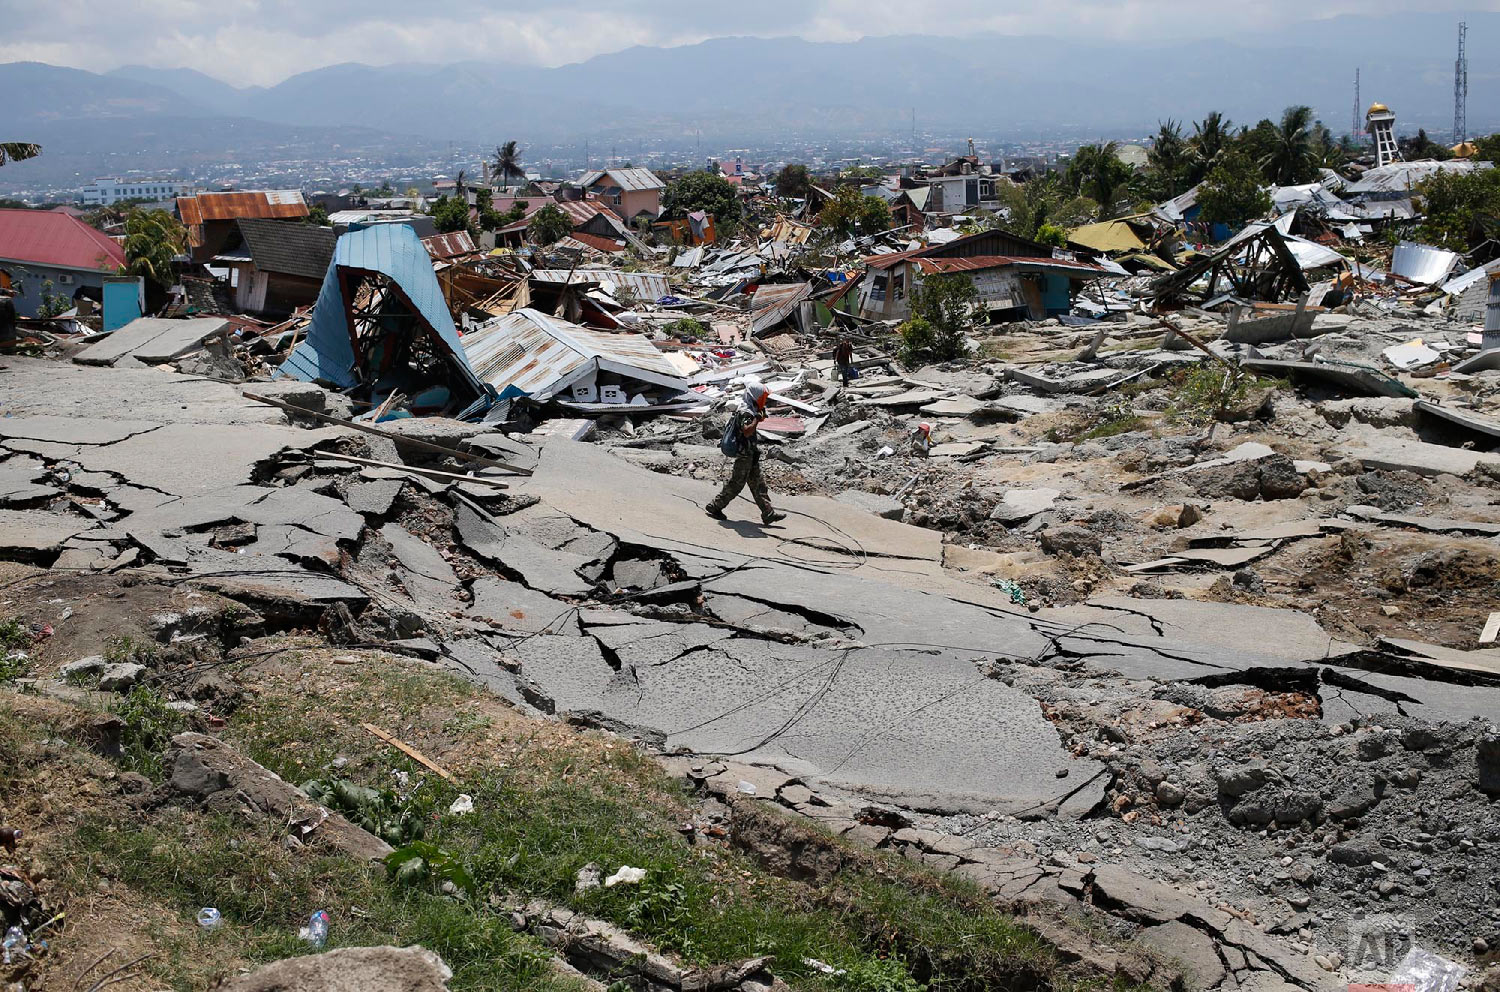 A man walks through the Balaroa neighborhood in Palu, Central Sulawesi, Indonesia, on Oct. 2, 2018, four days after a massive earthquake struck the region. (AP Photo/Dita Alangkara)